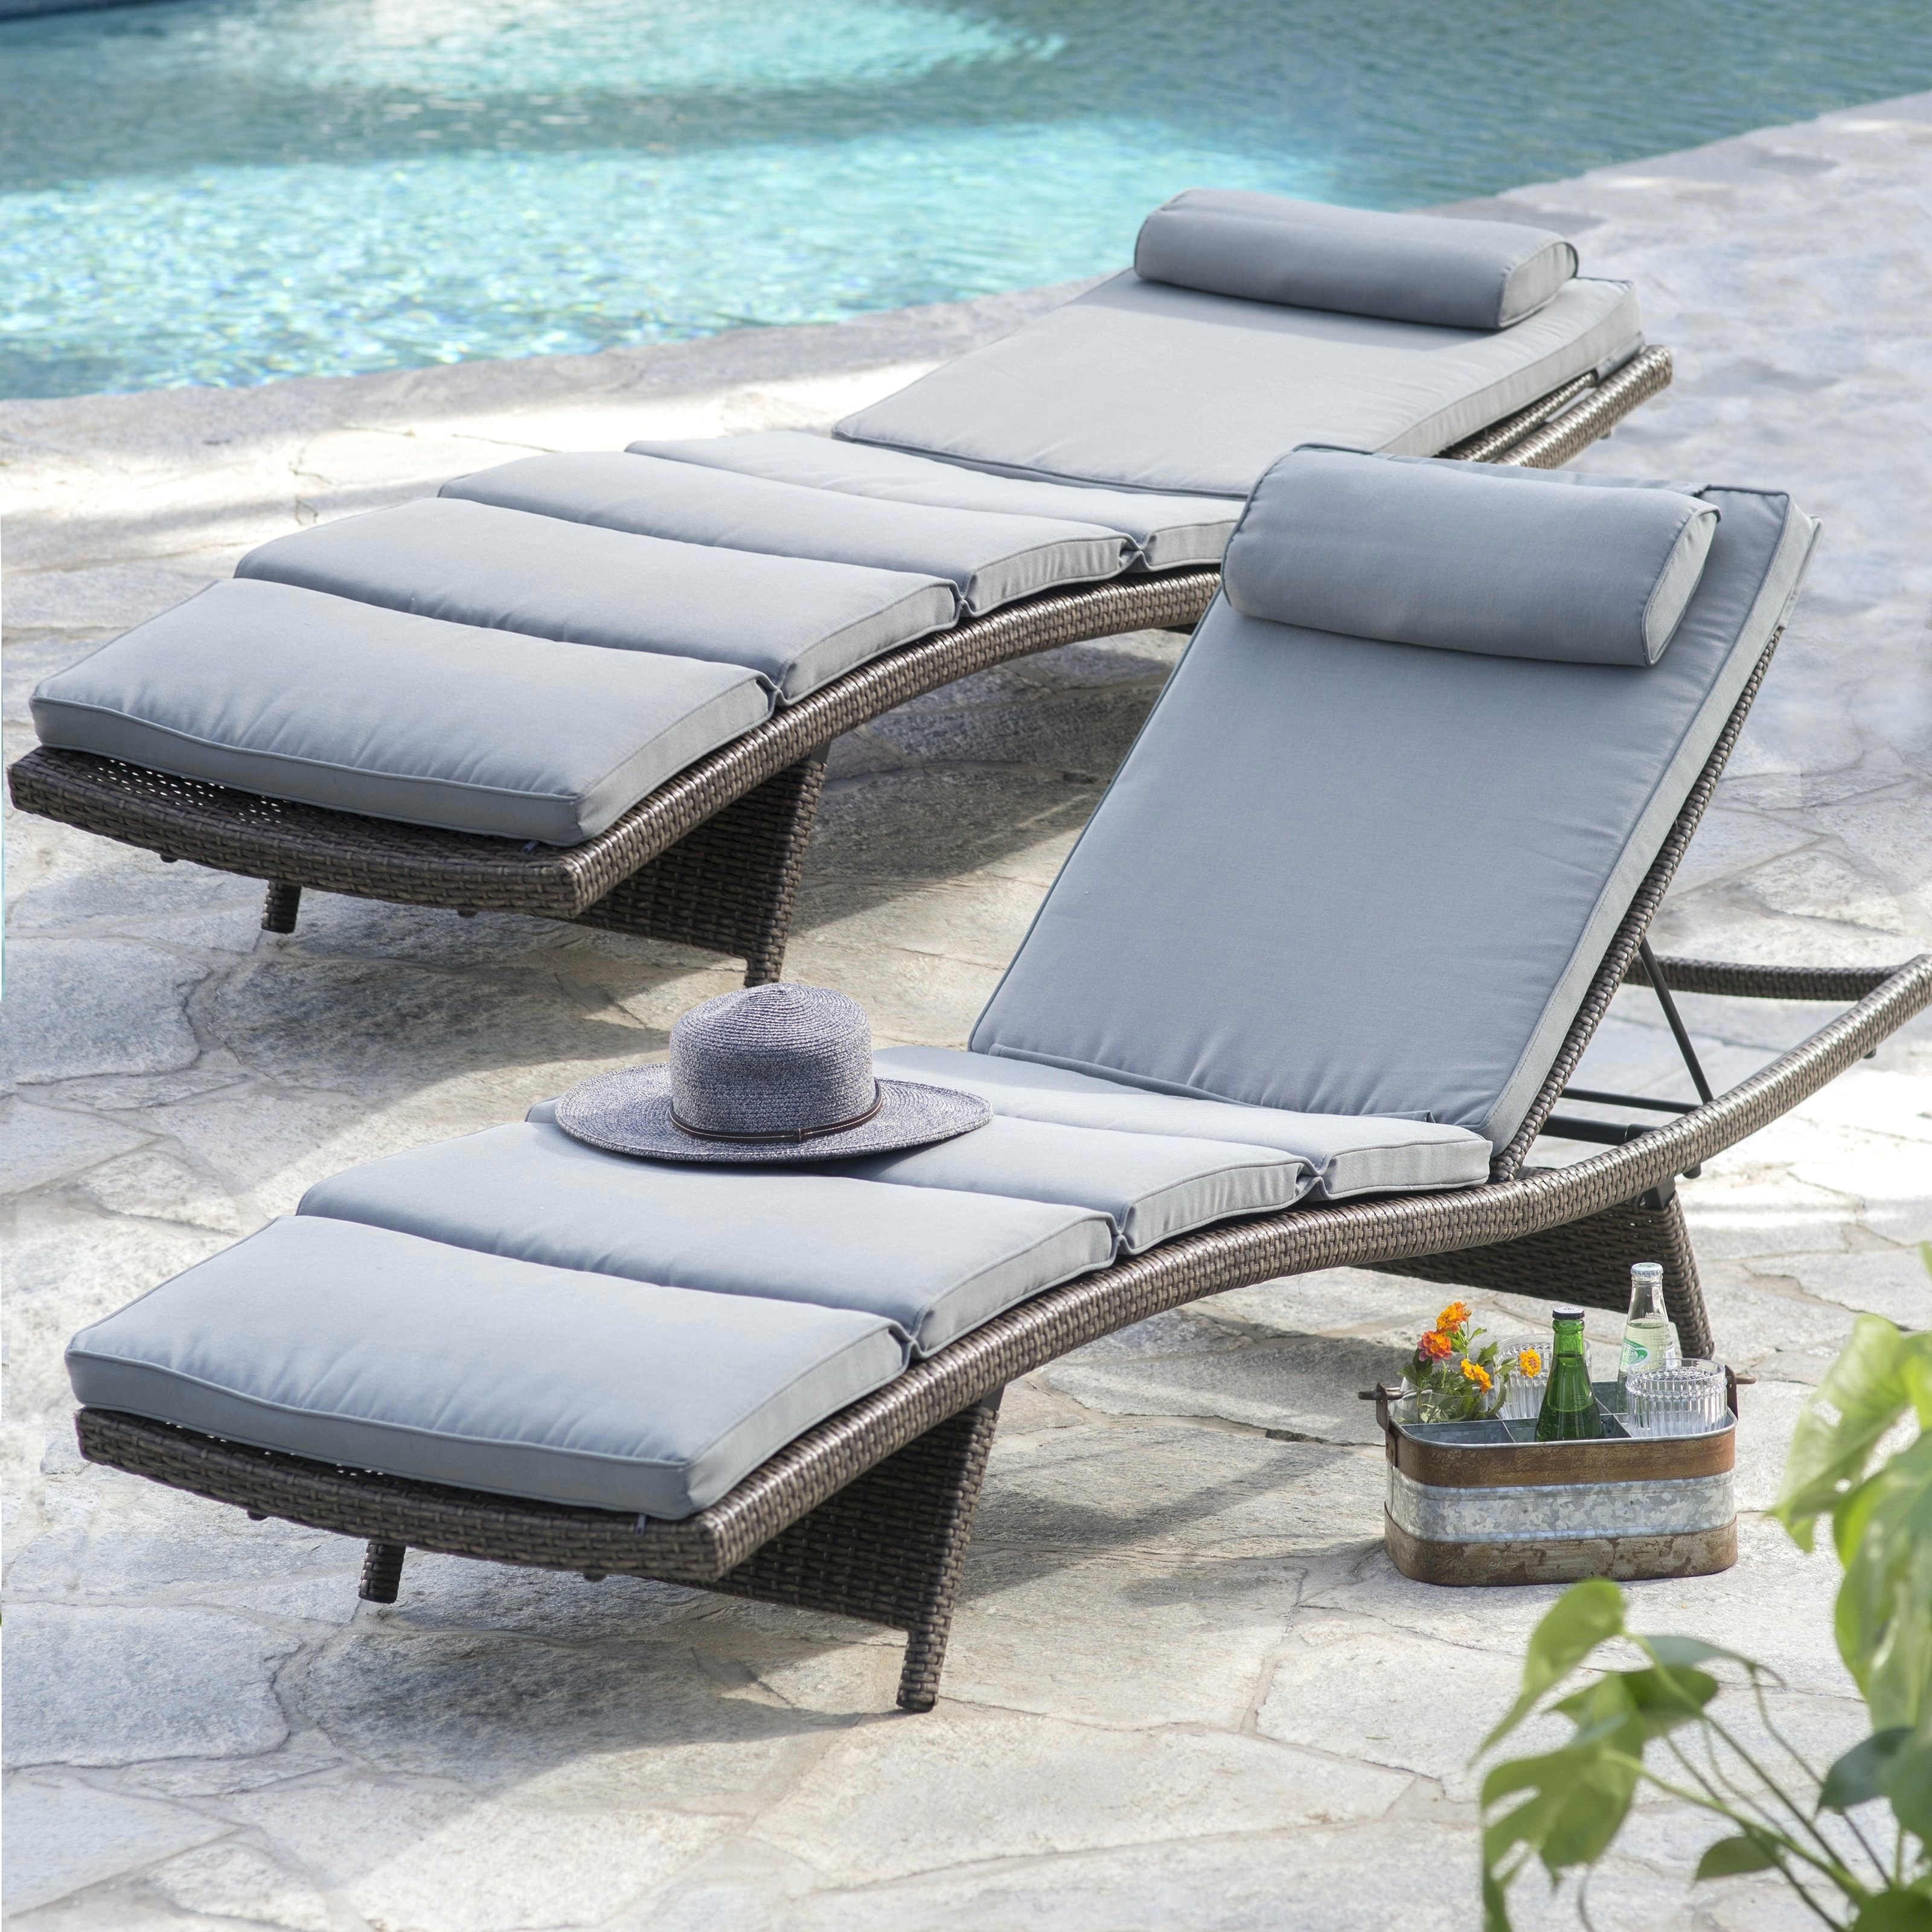 Well Known Boca Chaise Lounge Outdoor Chairs With Pillows Inside Boca Chaise Lounge Chair Outdoor Pillow • Lounge Chairs Ideas (View 11 of 15)